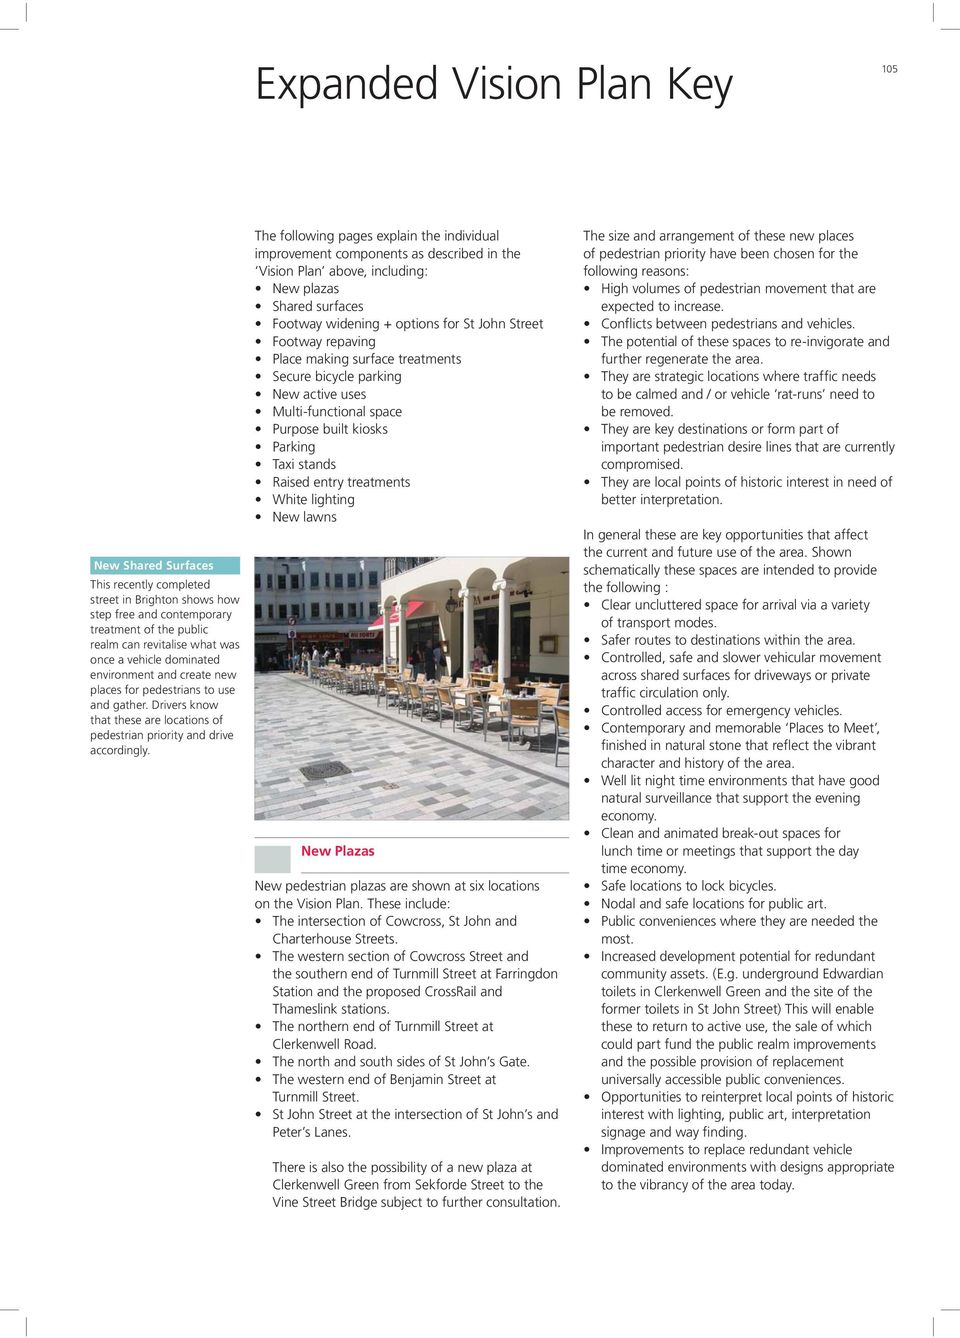 The following pages explain the individual improvement components as described in the Vision Plan above, including: New plazas Shared surfaces Footway widening + options for St John Street Footway